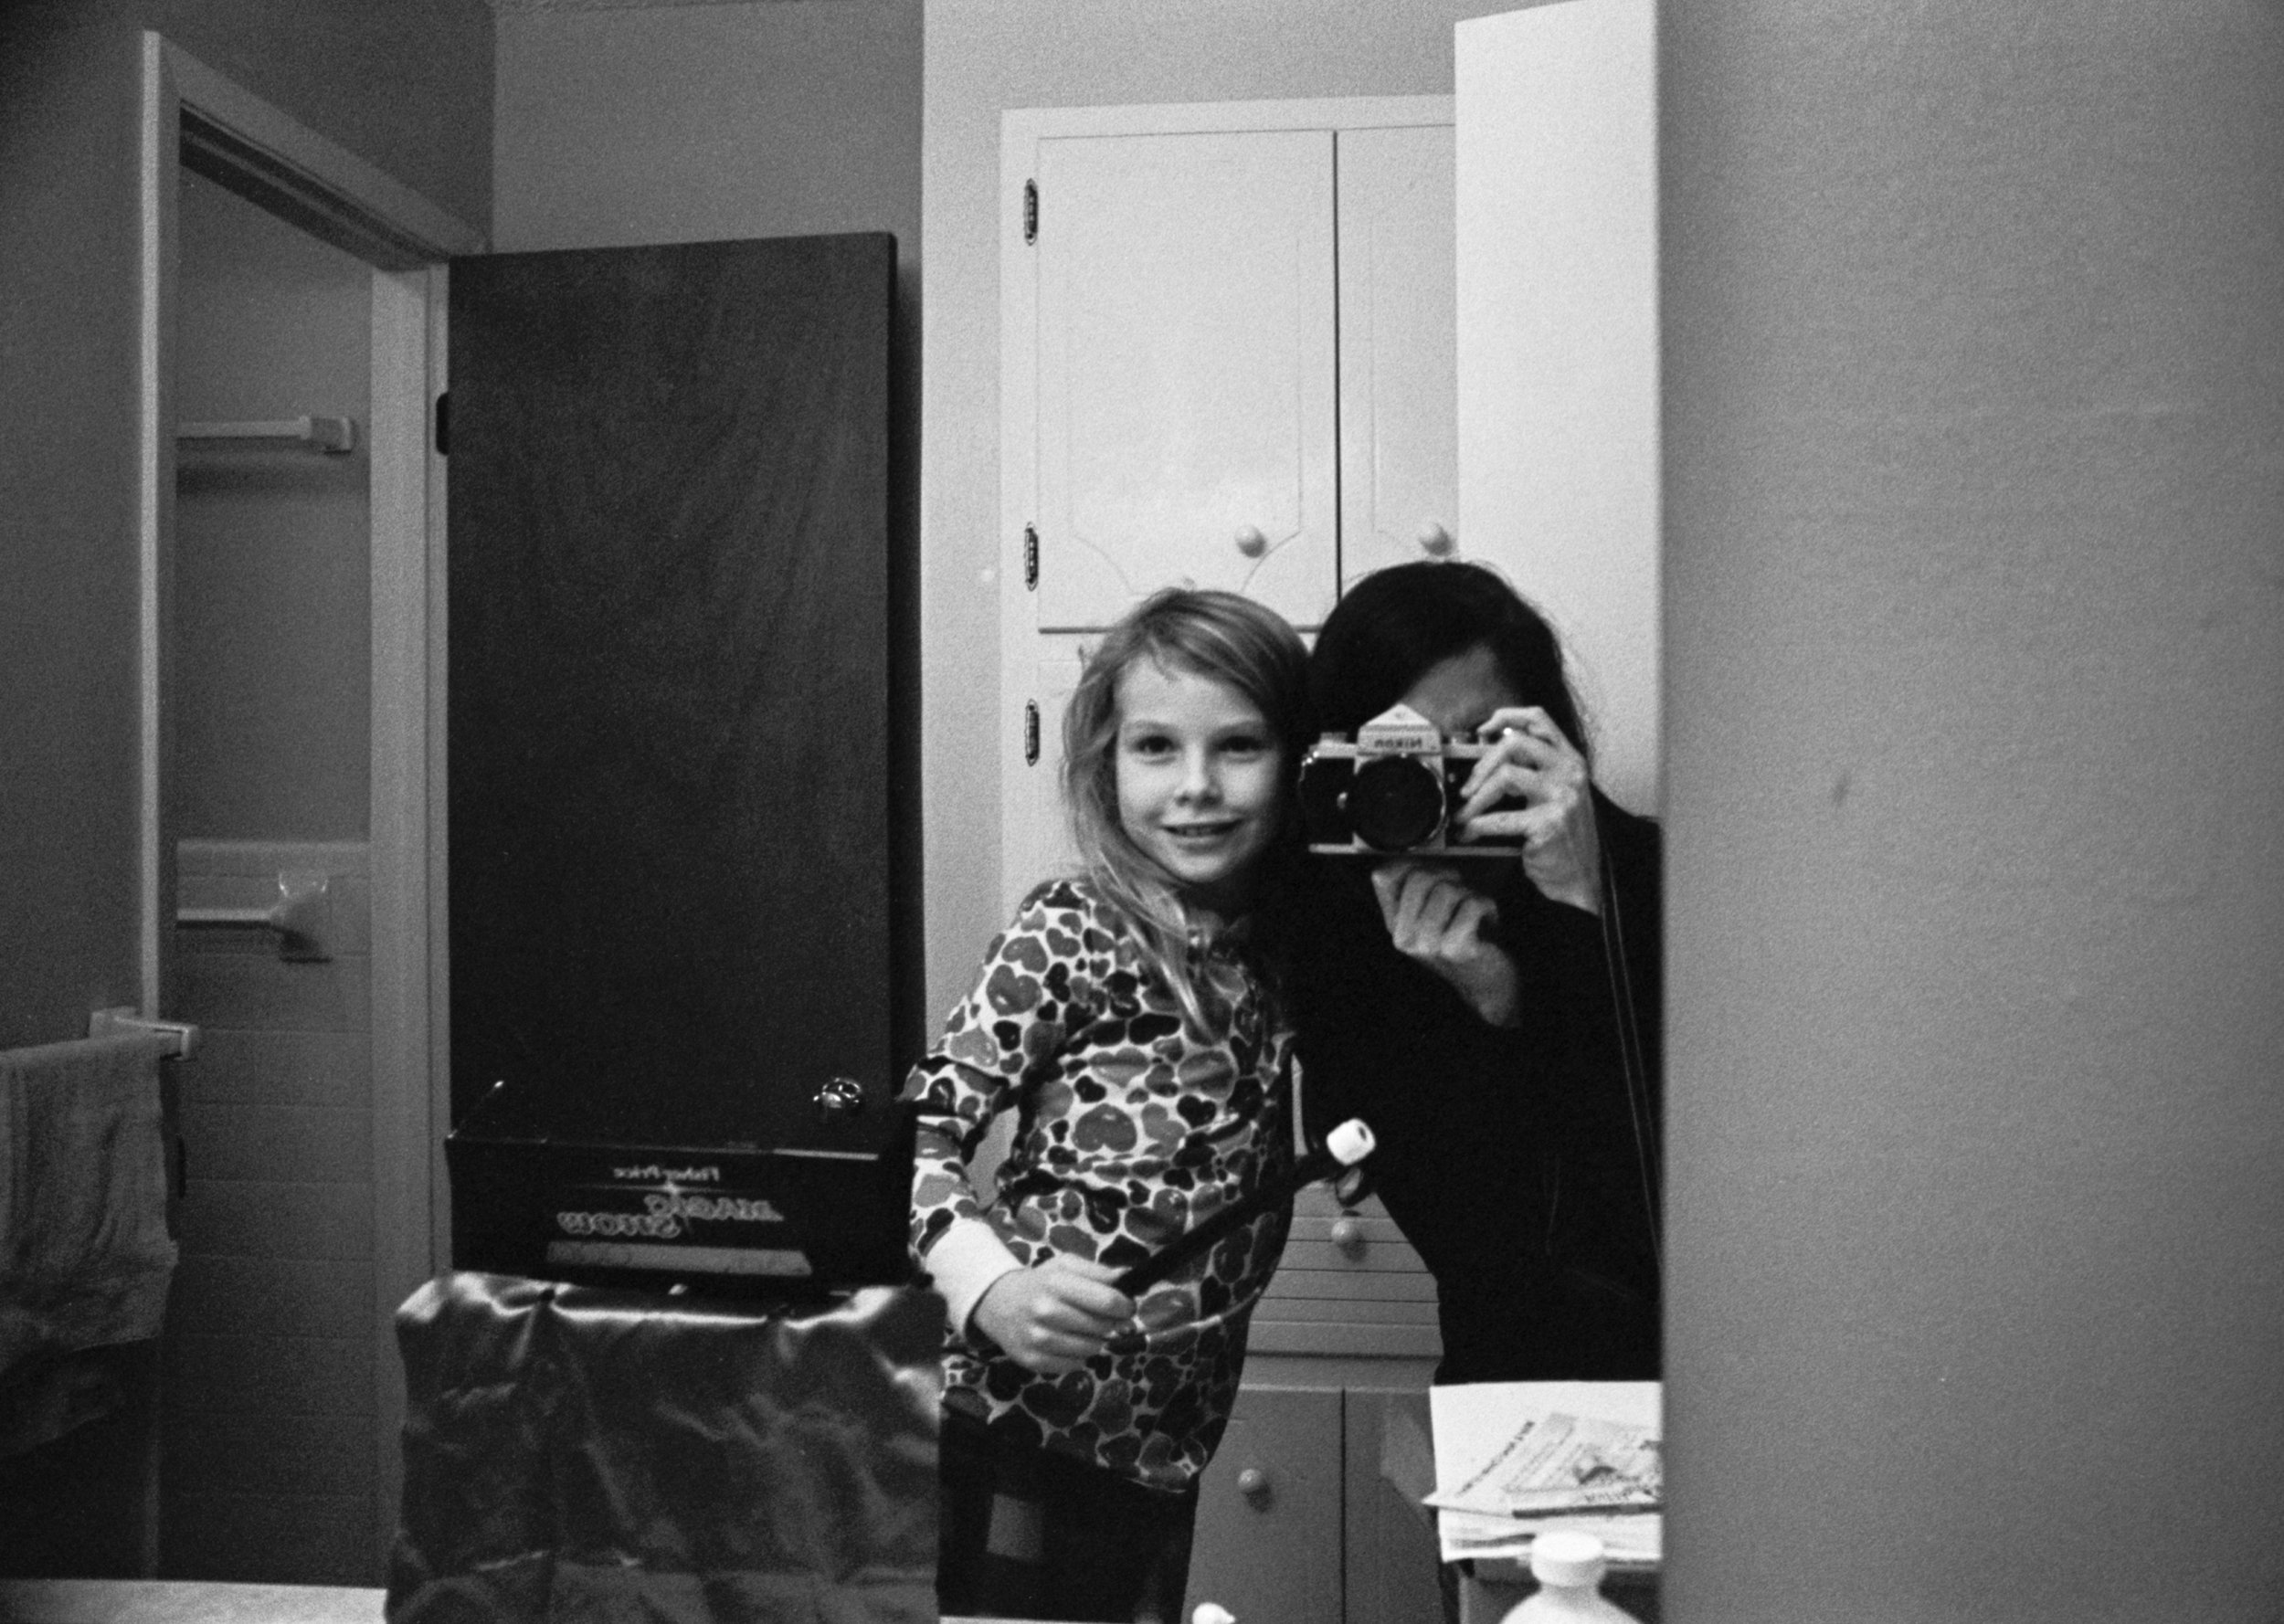 Louise & me waco bathroom (1 of 1).jpg